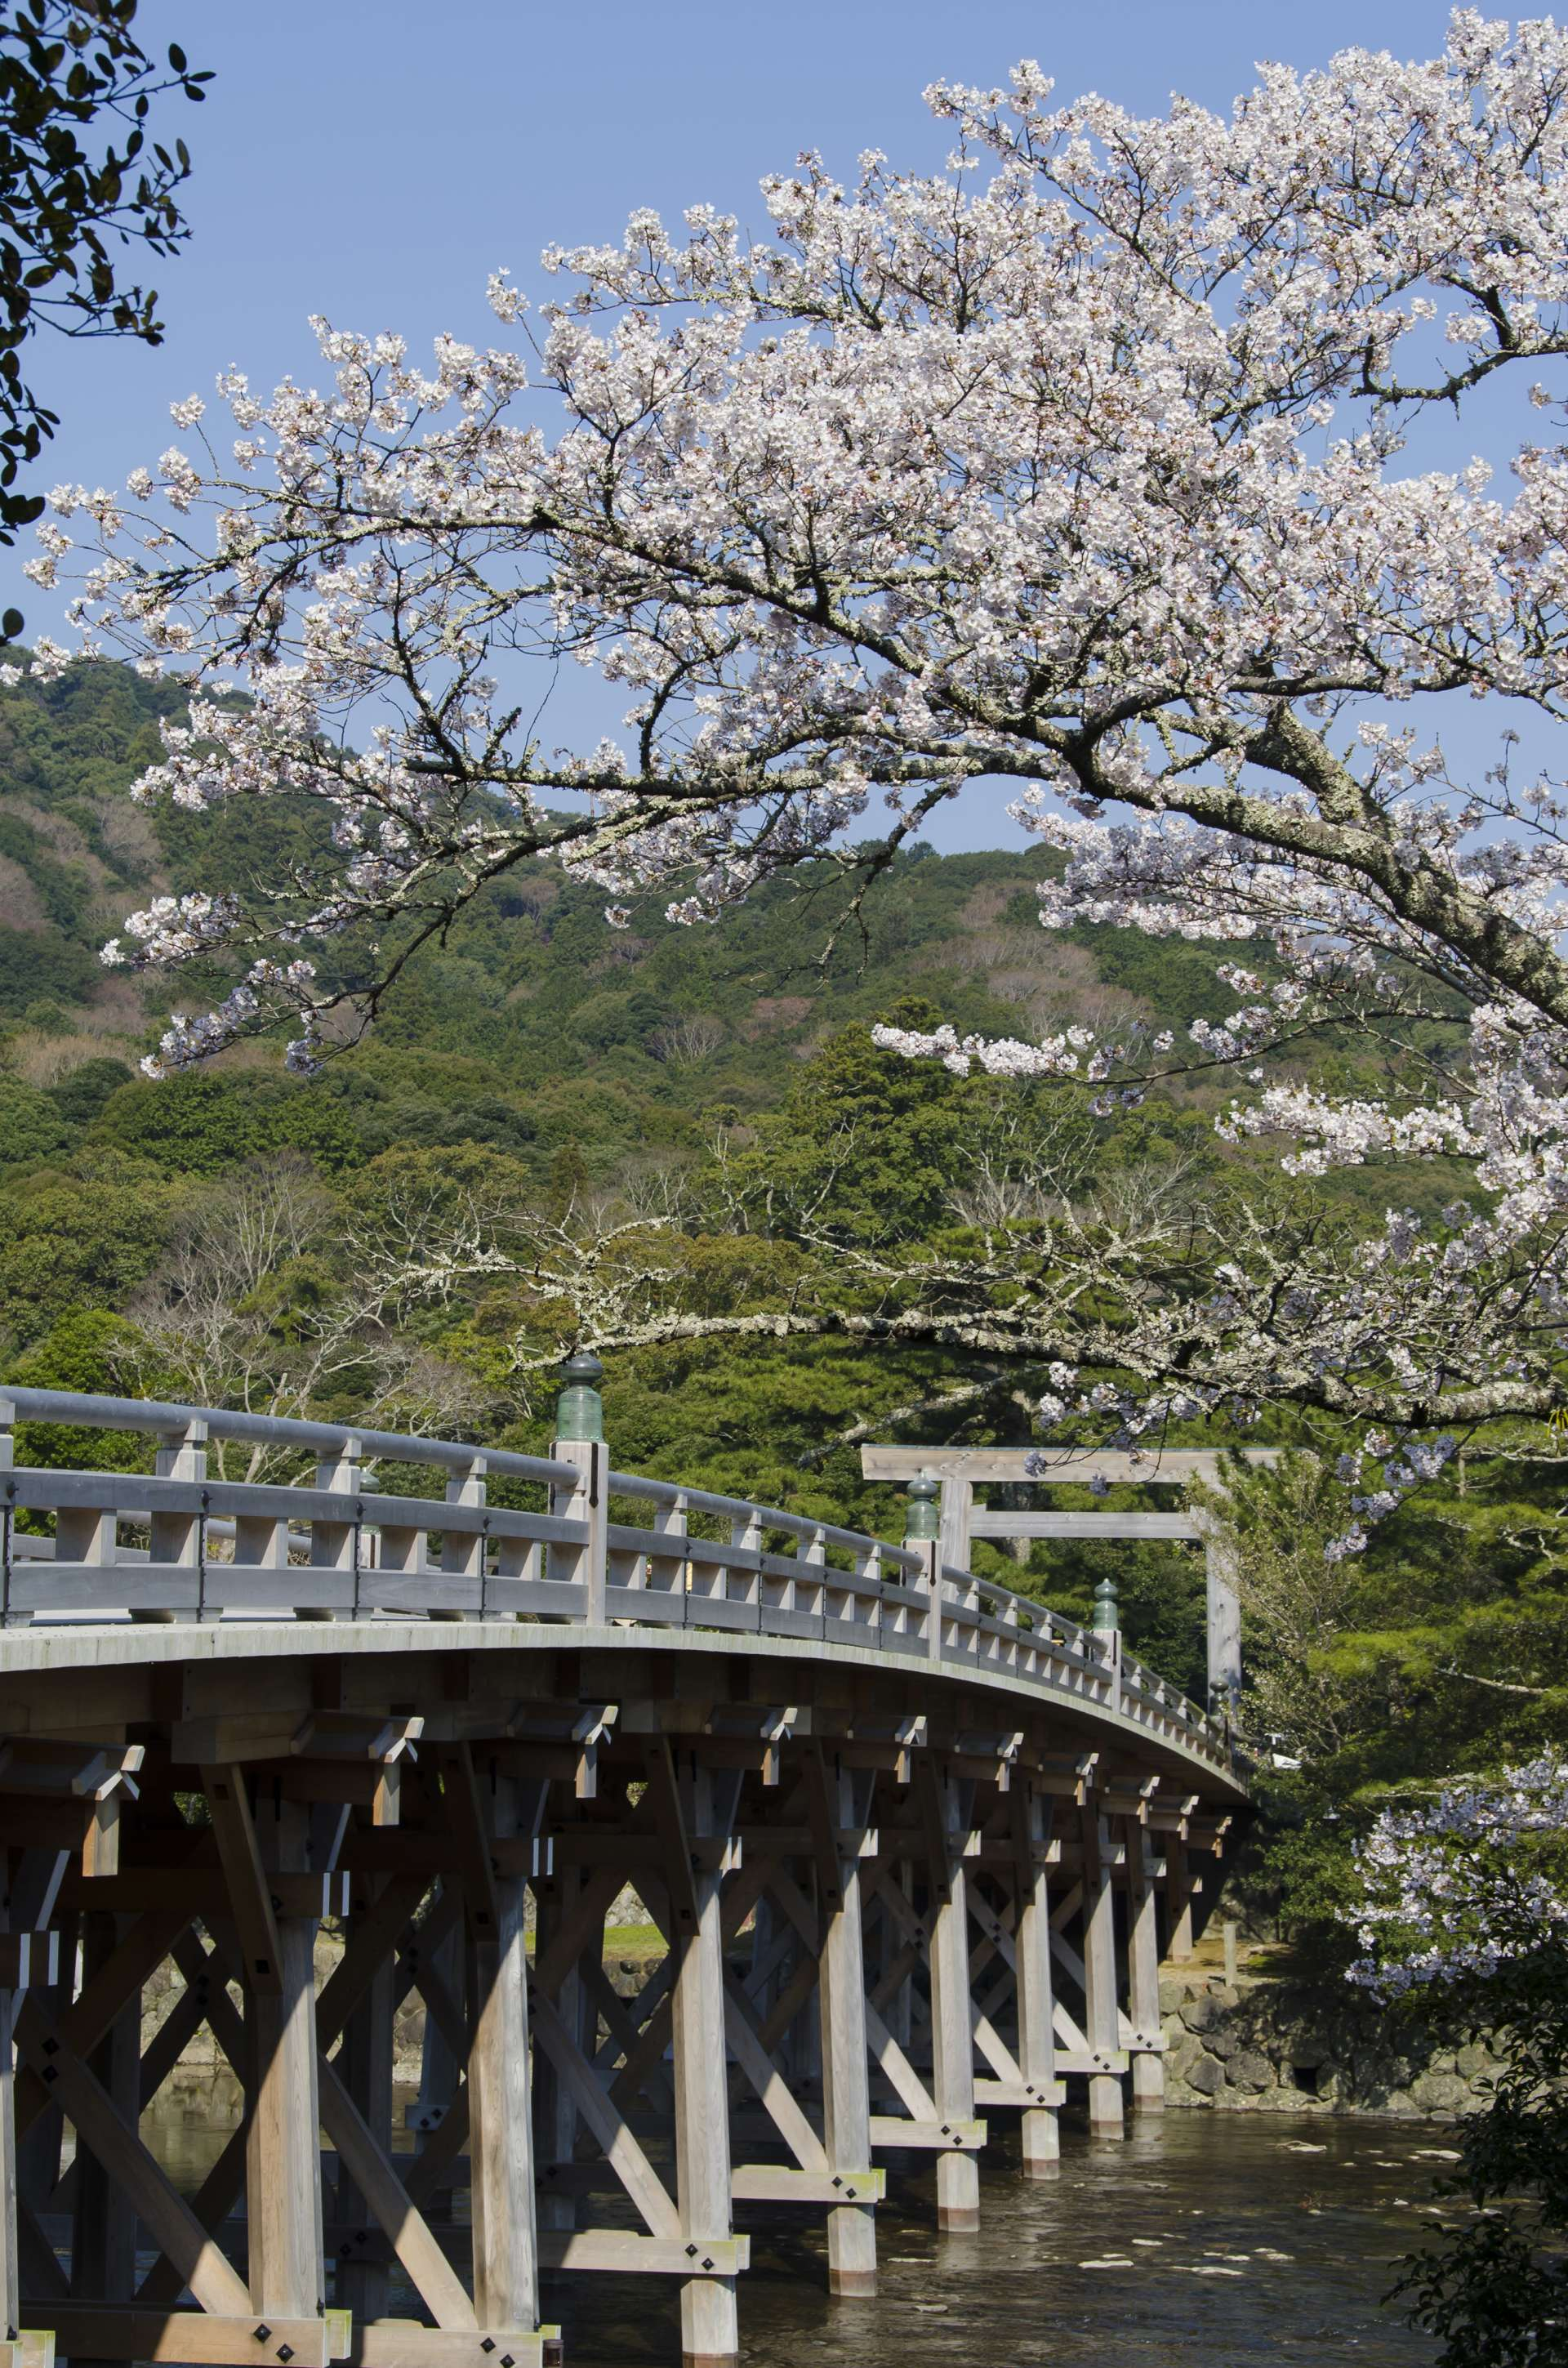 Uji Bridge to go over to Ise Grand Shrine